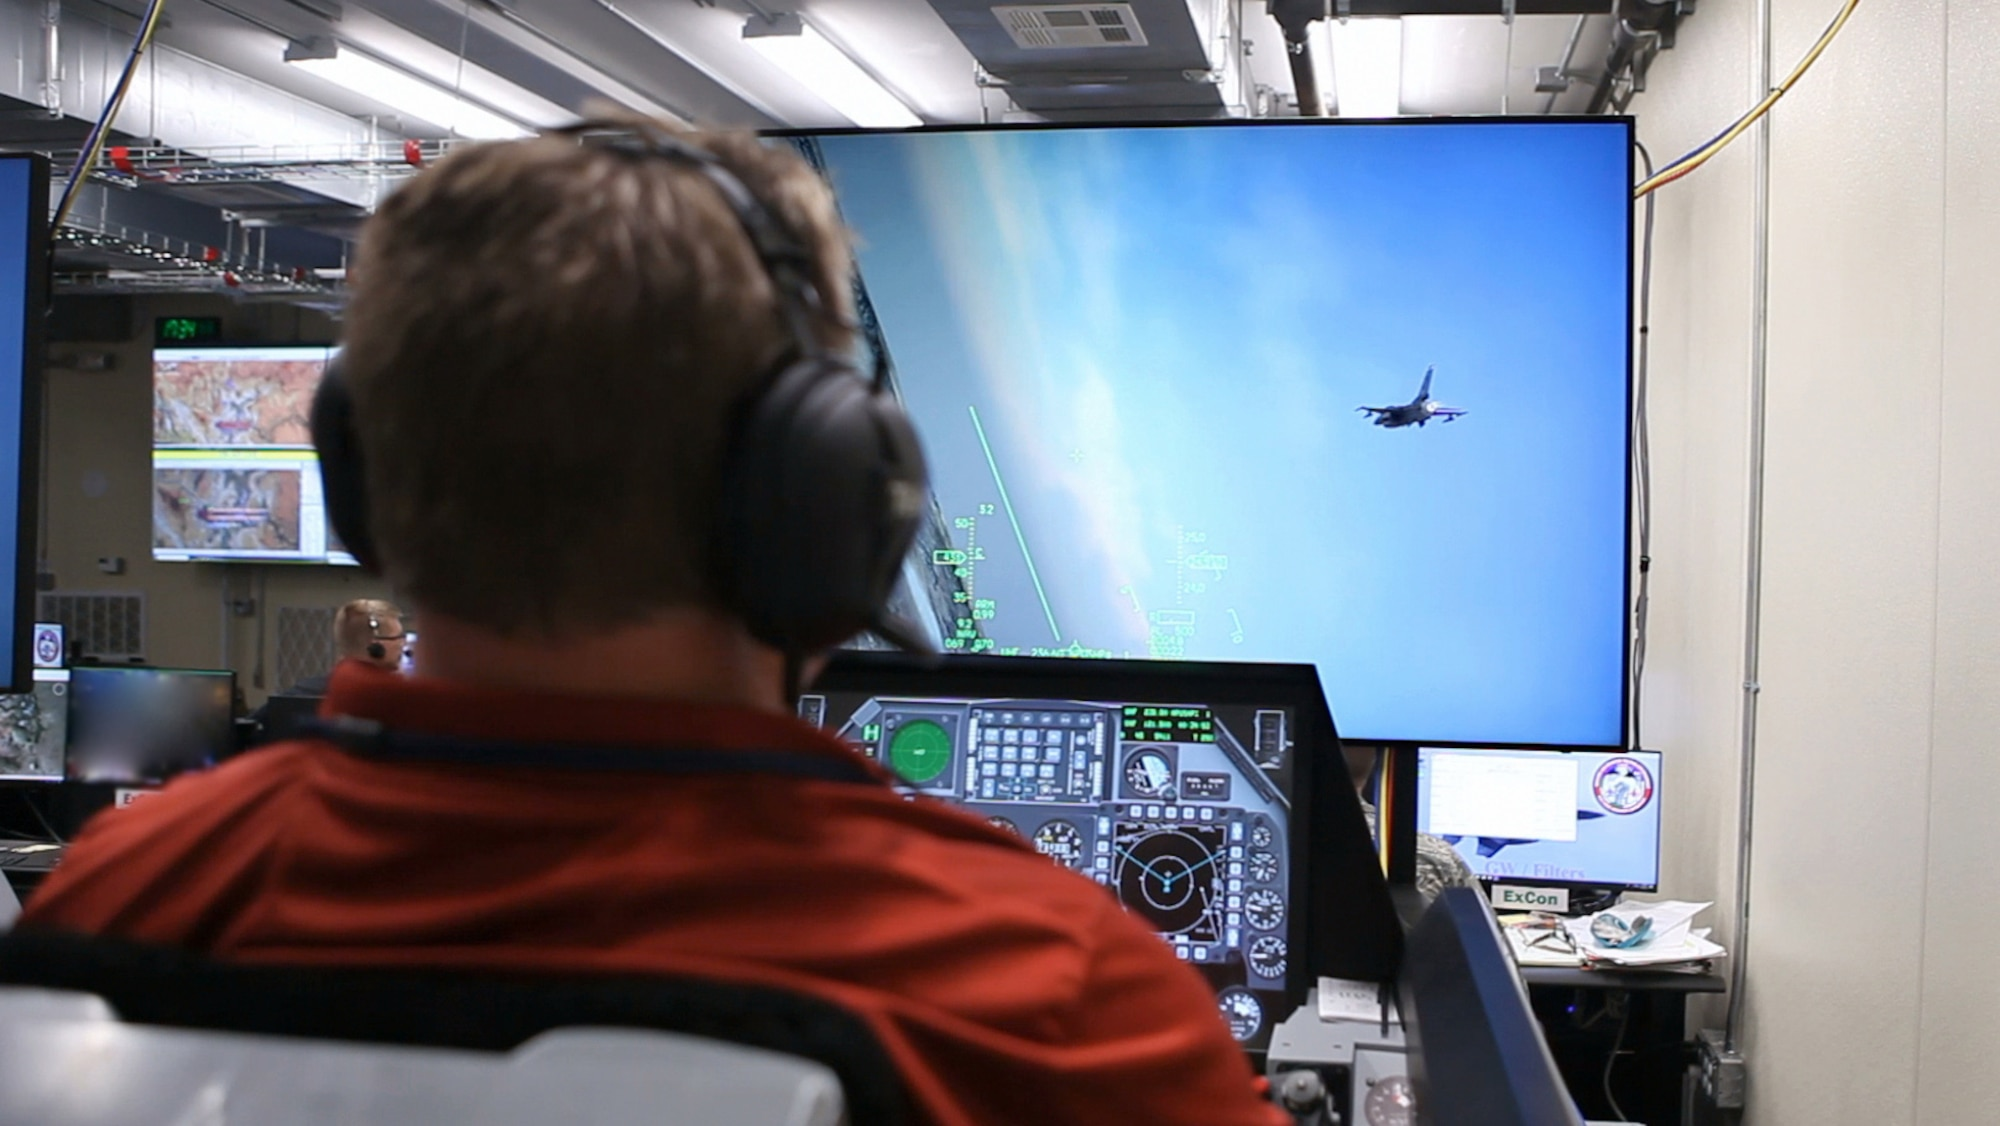 Donald Simones, a subject matter expert in the Air Force Research Laboratory's 711th Human Performance Wing, flies a virtual F-16 in a Deployable Tactical Trainer during the Secure Live Virtual Constructive Advanced Training Environment (SLATE) Phase III capstone demonstration at Nellis Air Force Base, Nevada in September. The live aircraft, such as the one shown on the screen, were able to see and interact with the virtual players like Simones during the demonstration. (U.S. Air Force photo/William Graver)